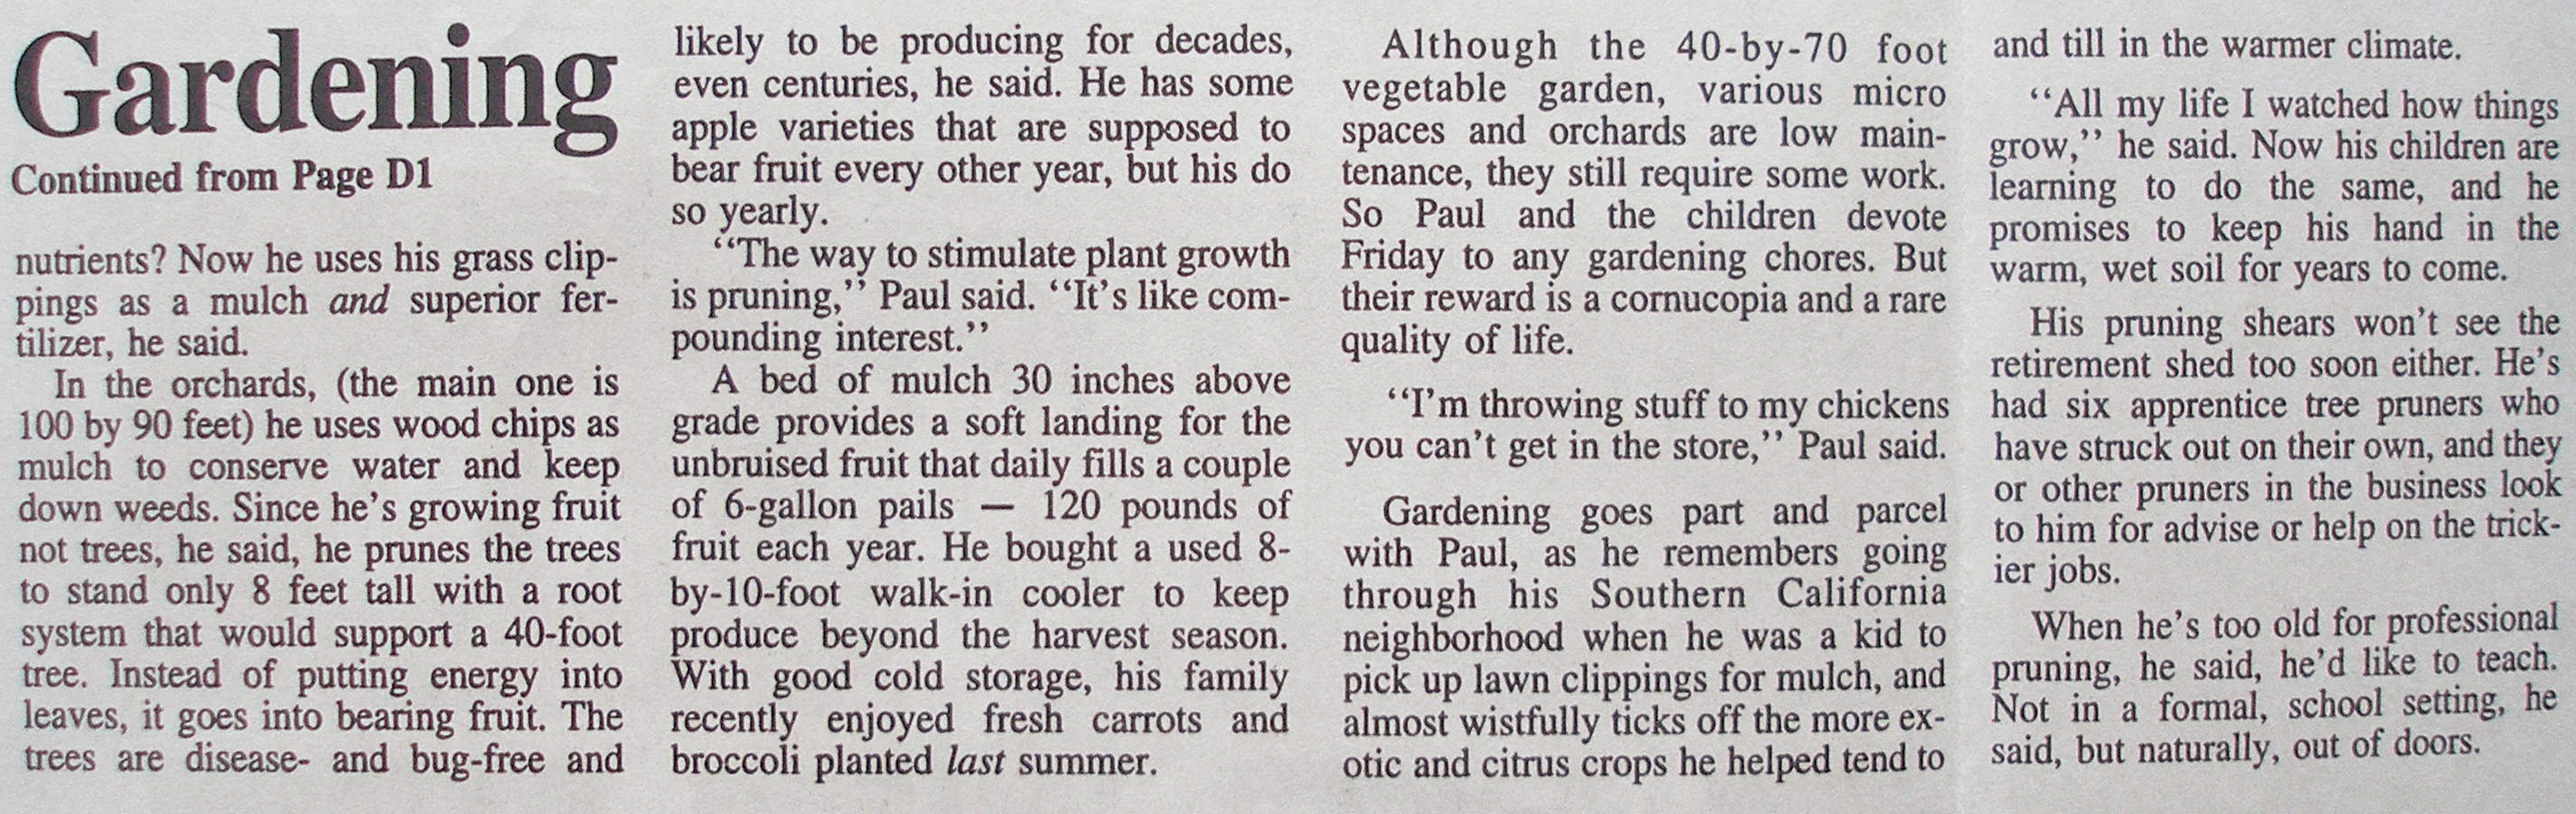 how to get back earthworms in gardens